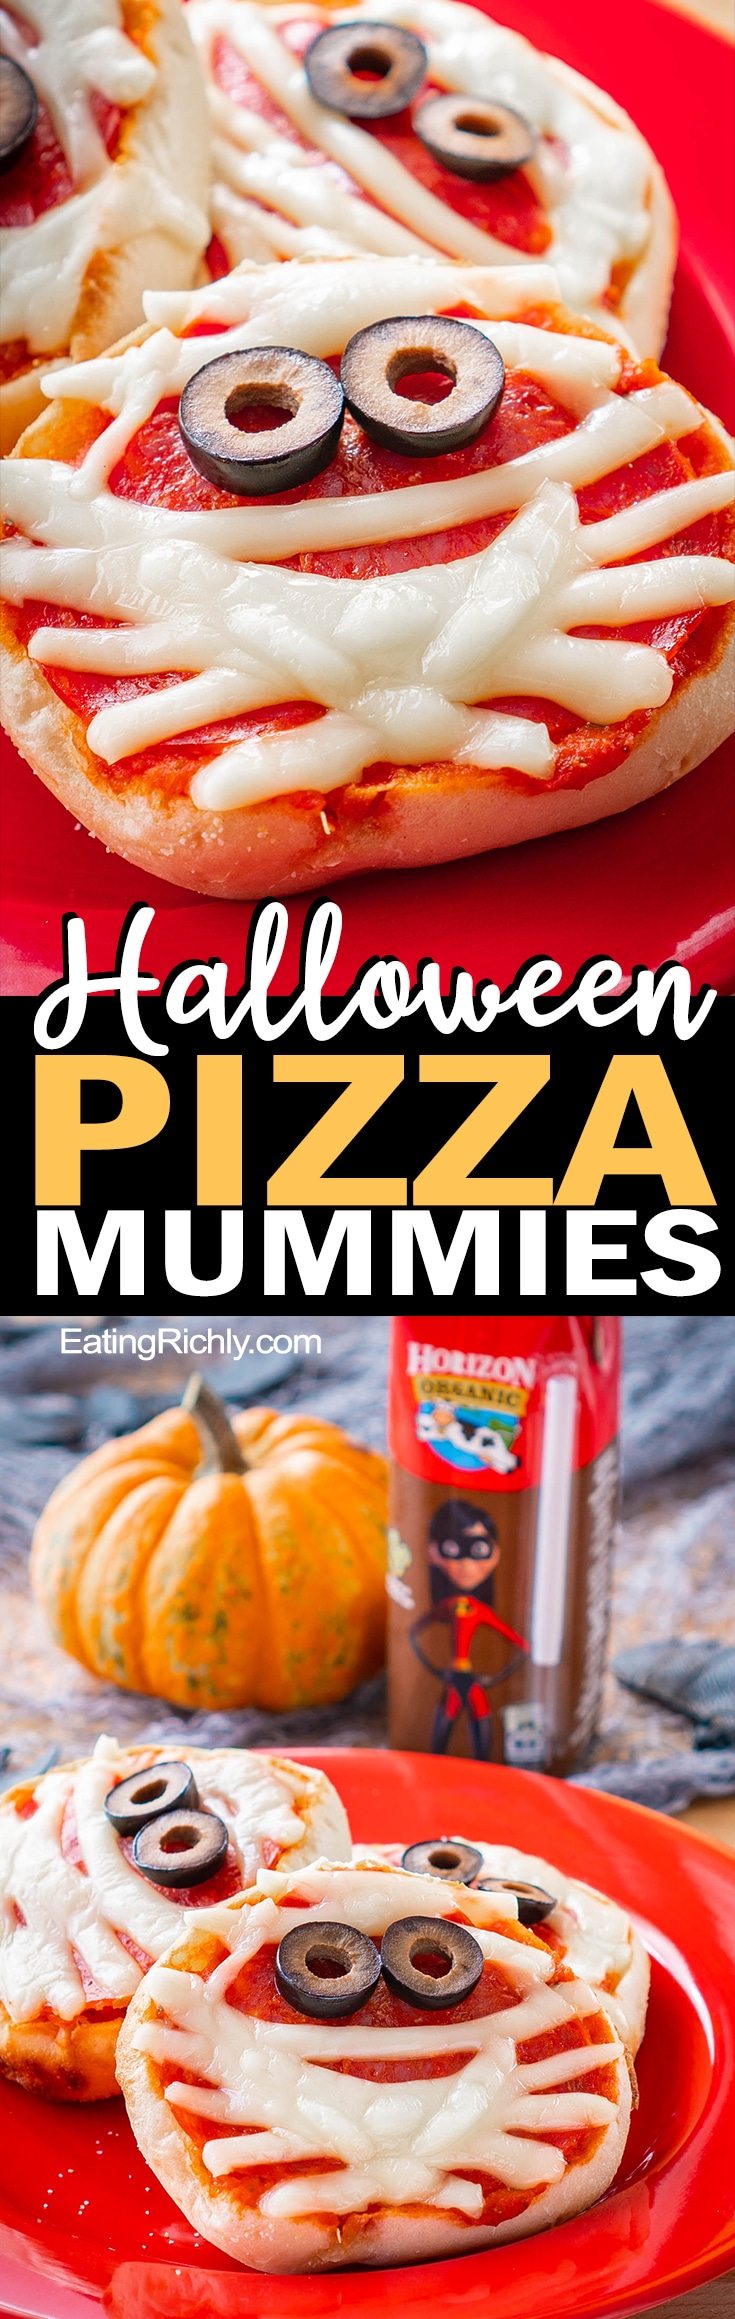 Halloween Pizza Mummy Recipe